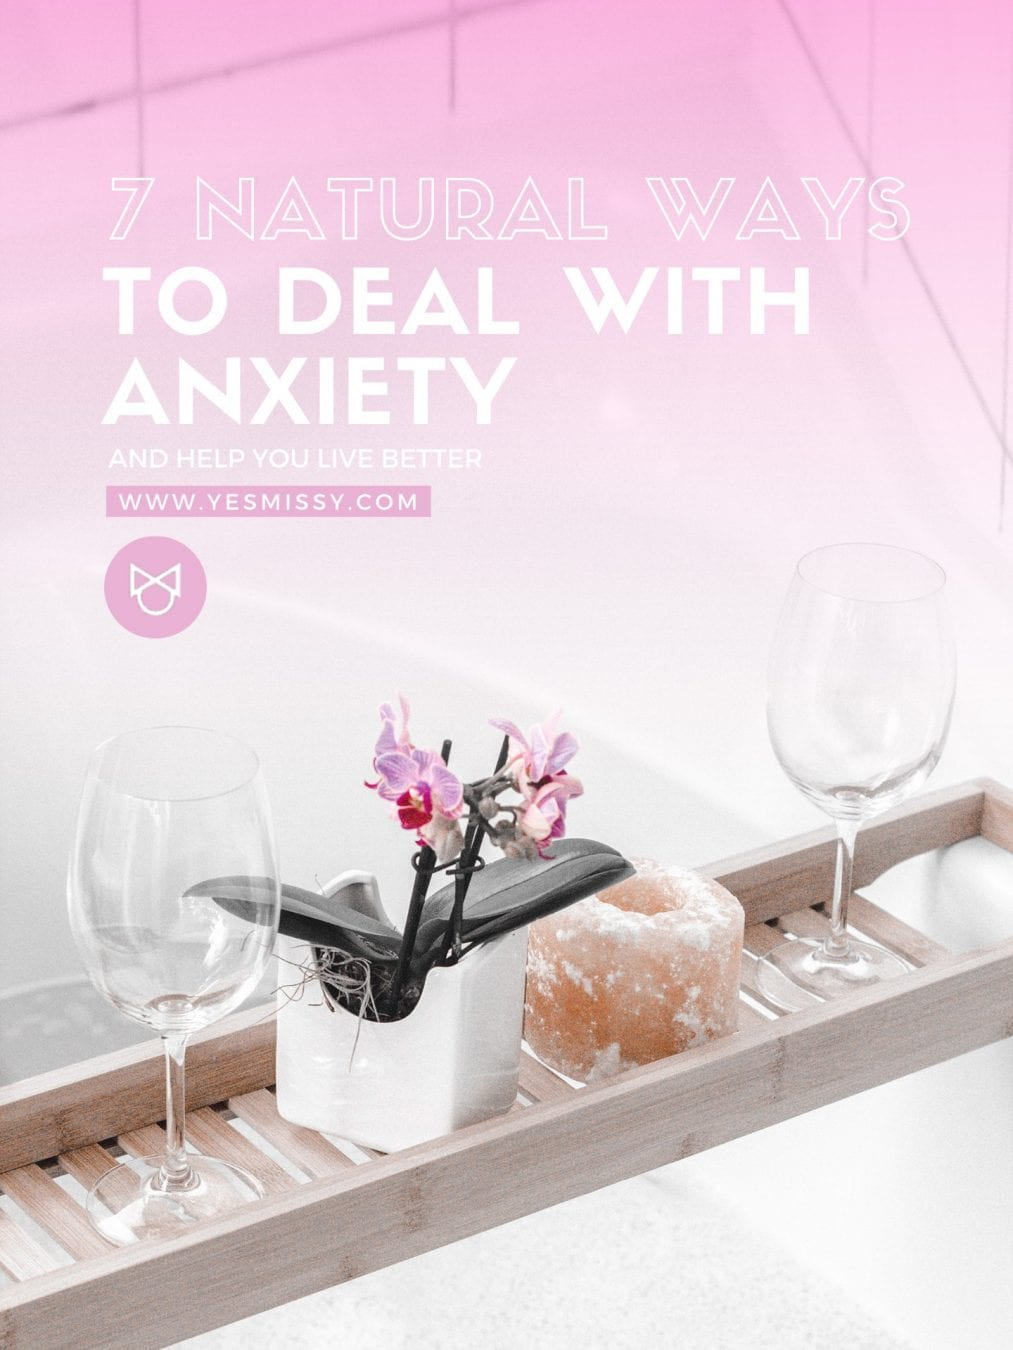 Natural Remedies for Anxiety - Tips, tricks and coping mechanisms to help relieve anxiety and stress